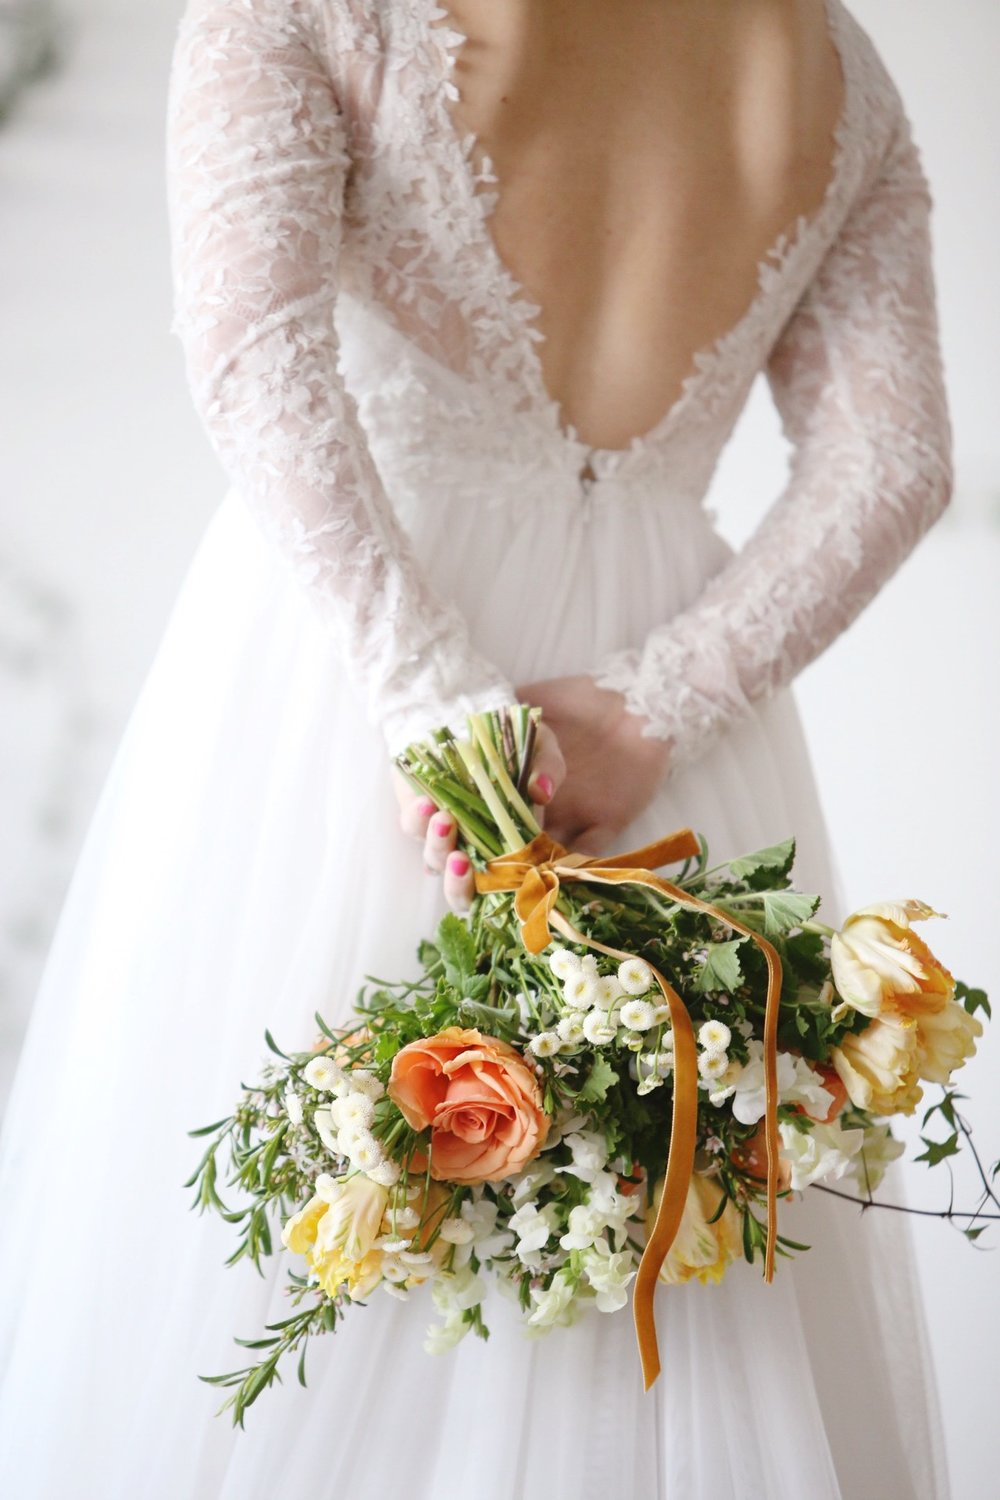 Kansas City Wedding Florist Flora Design Co.